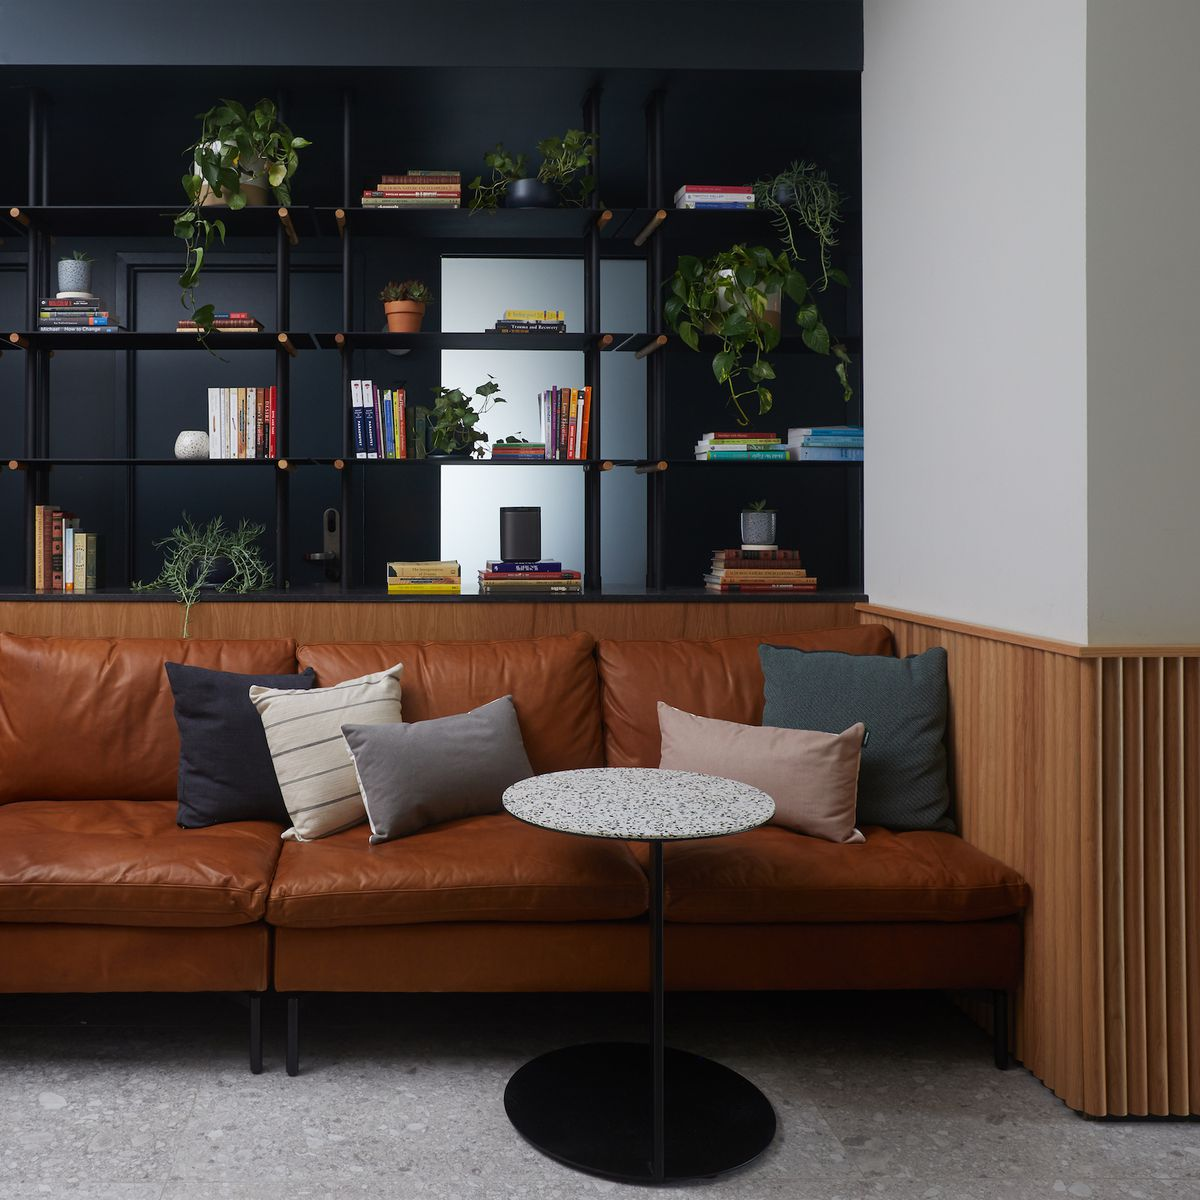 Leather couch with table in front of it